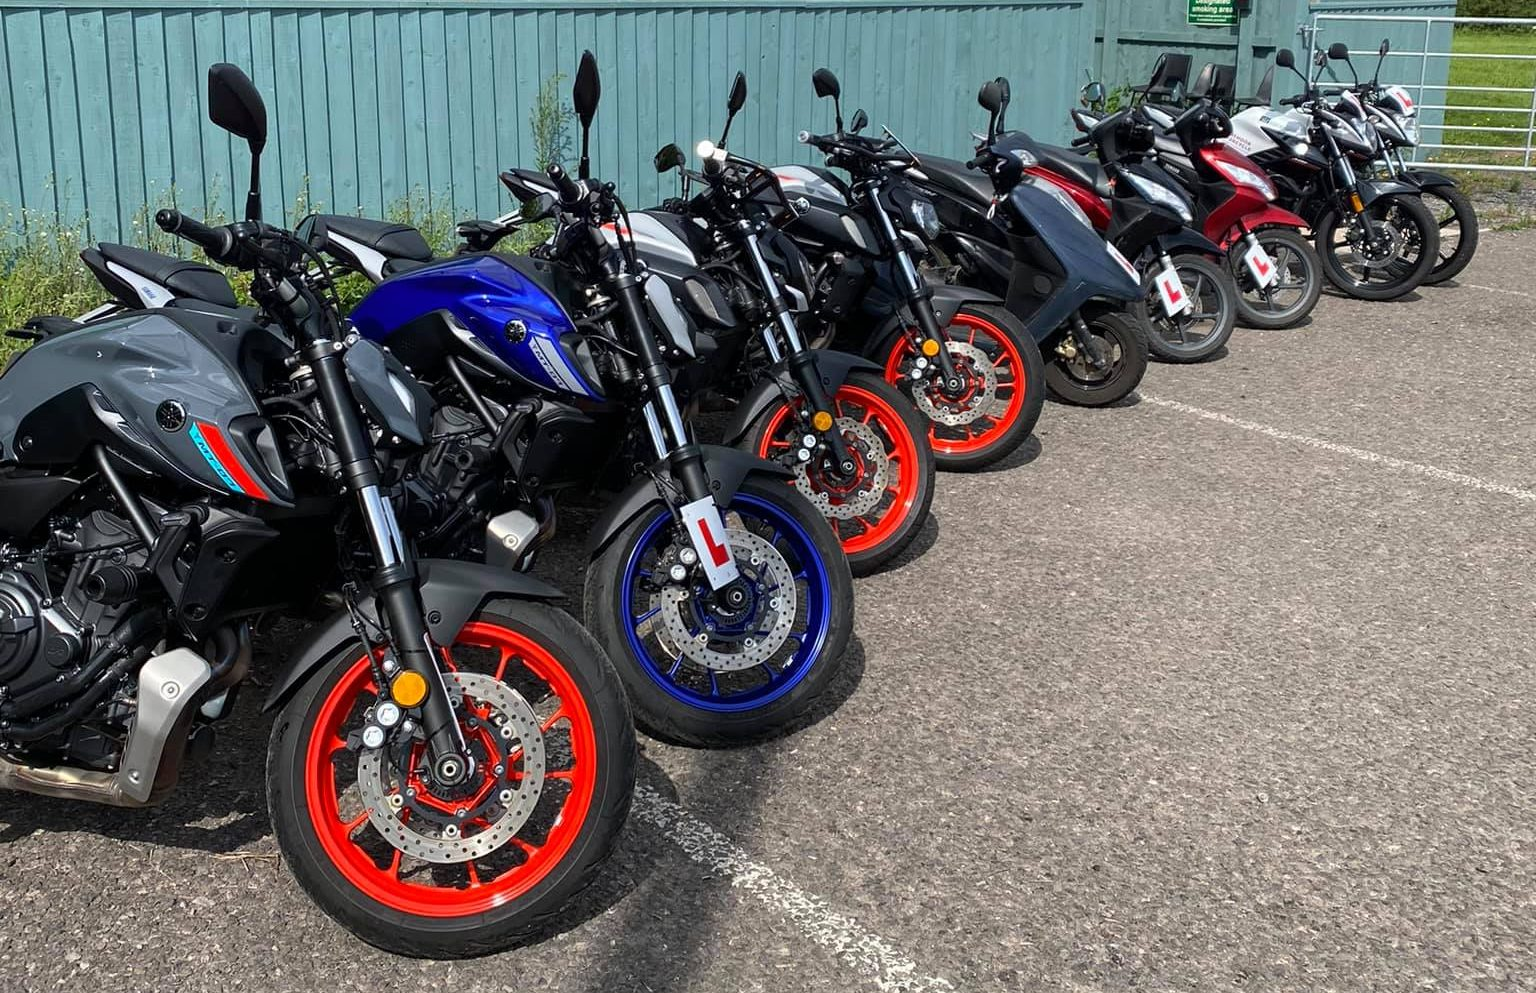 Motorbikes Cleaned & Adjusted for Customers